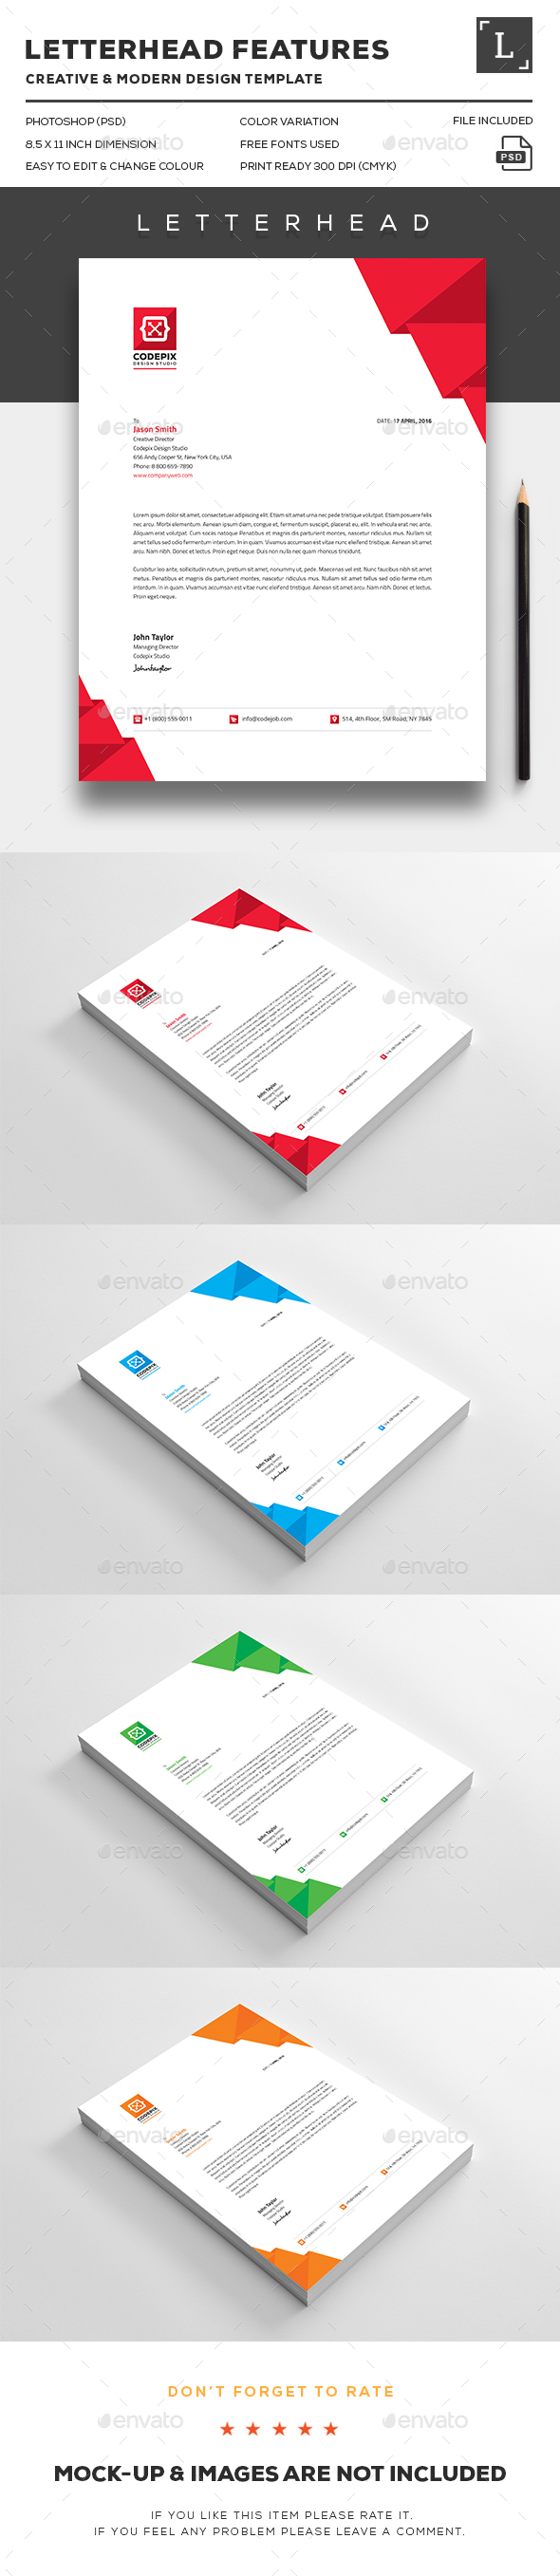 Letterhead And Stationery Design Templates From GraphicRiver